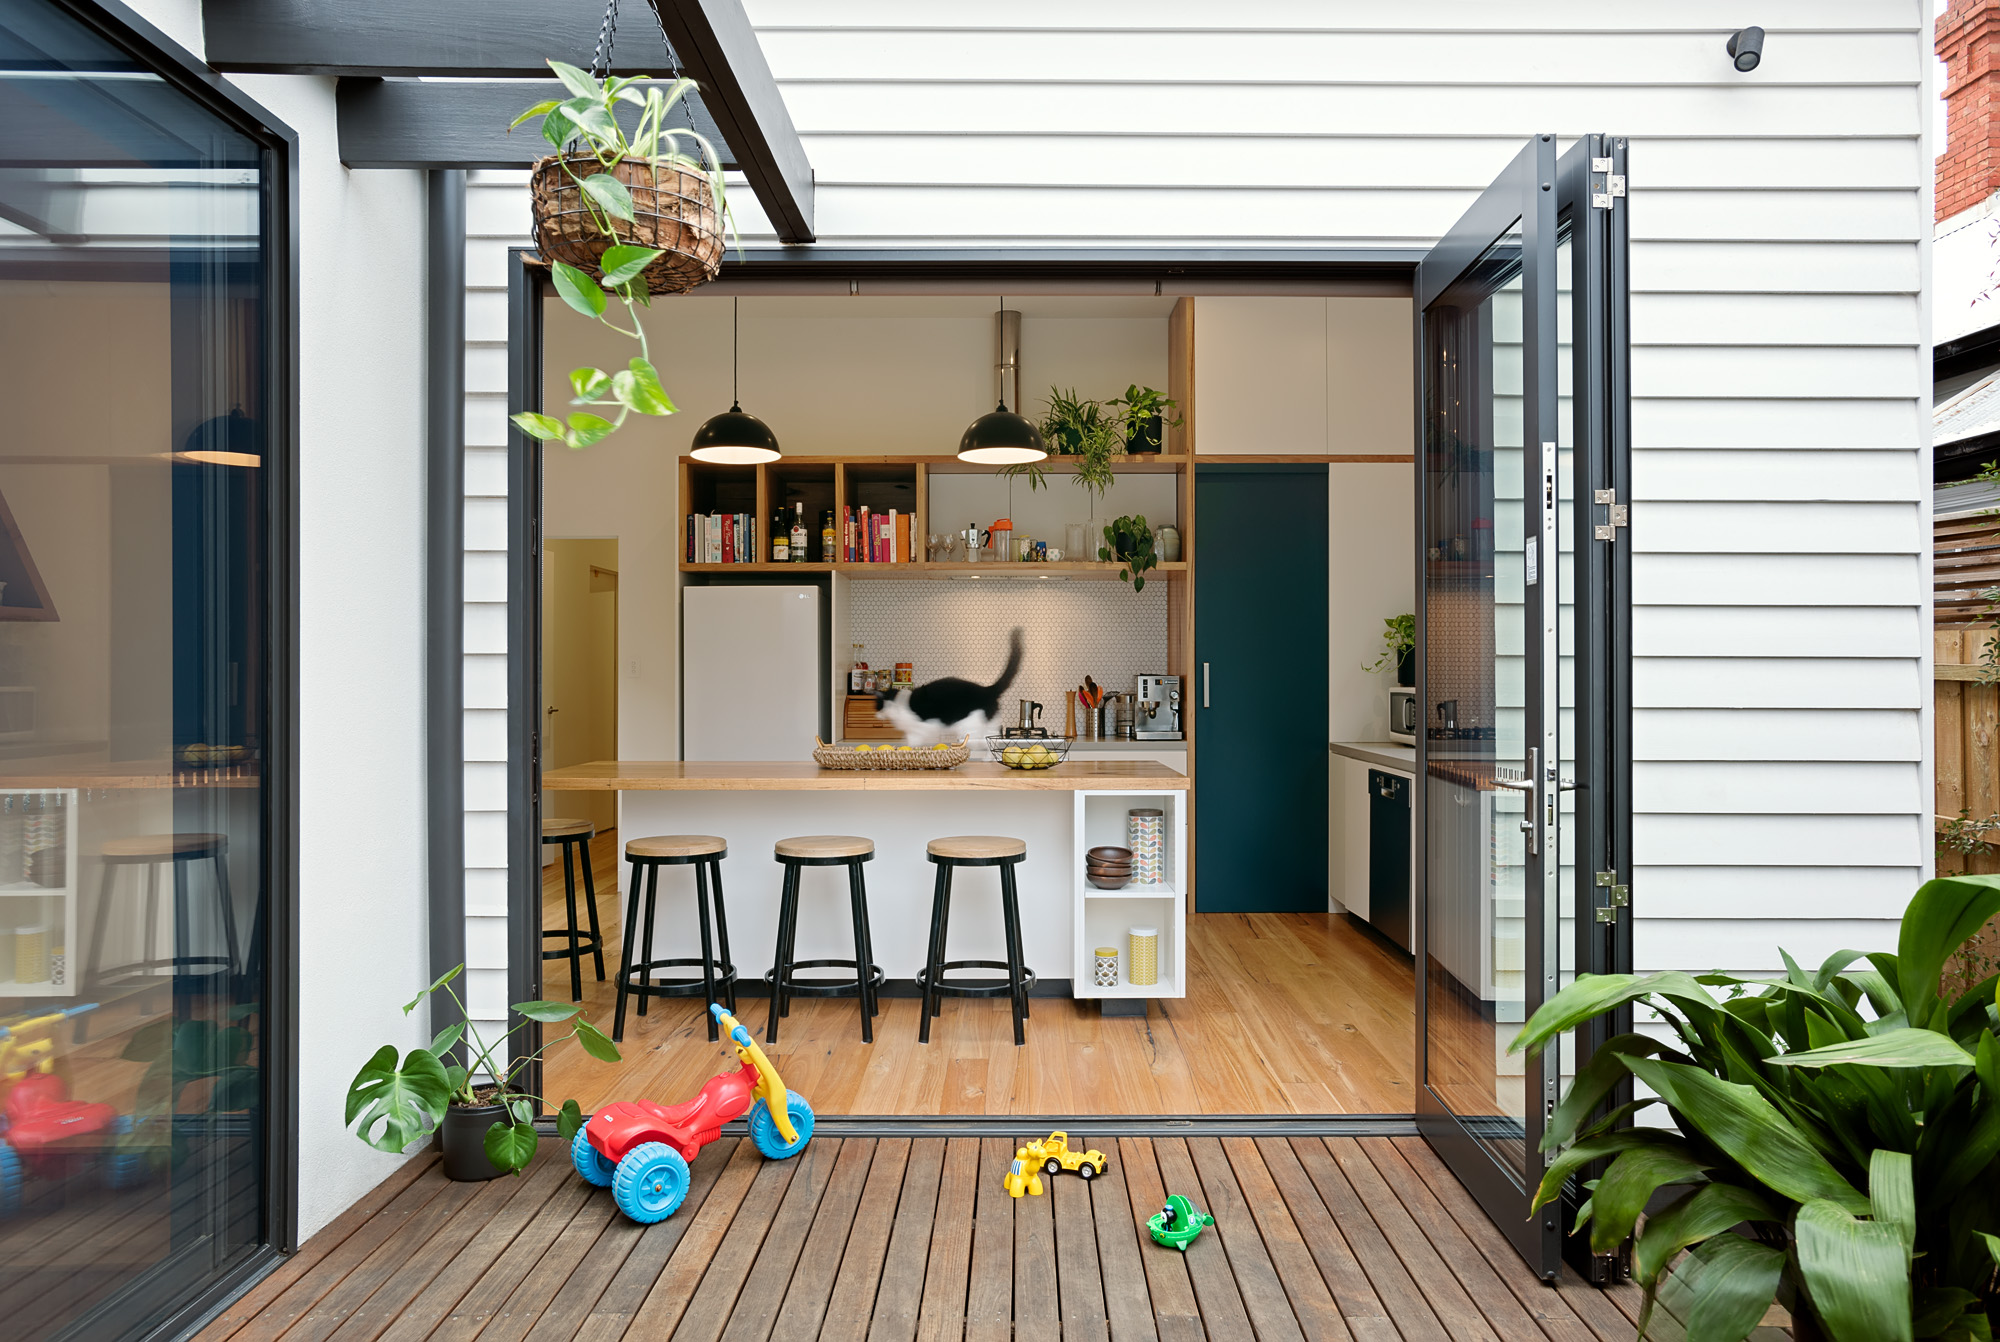 green sheep collective sustainable architect melbourne large bi fold doors passive solar heating cooling.jpg